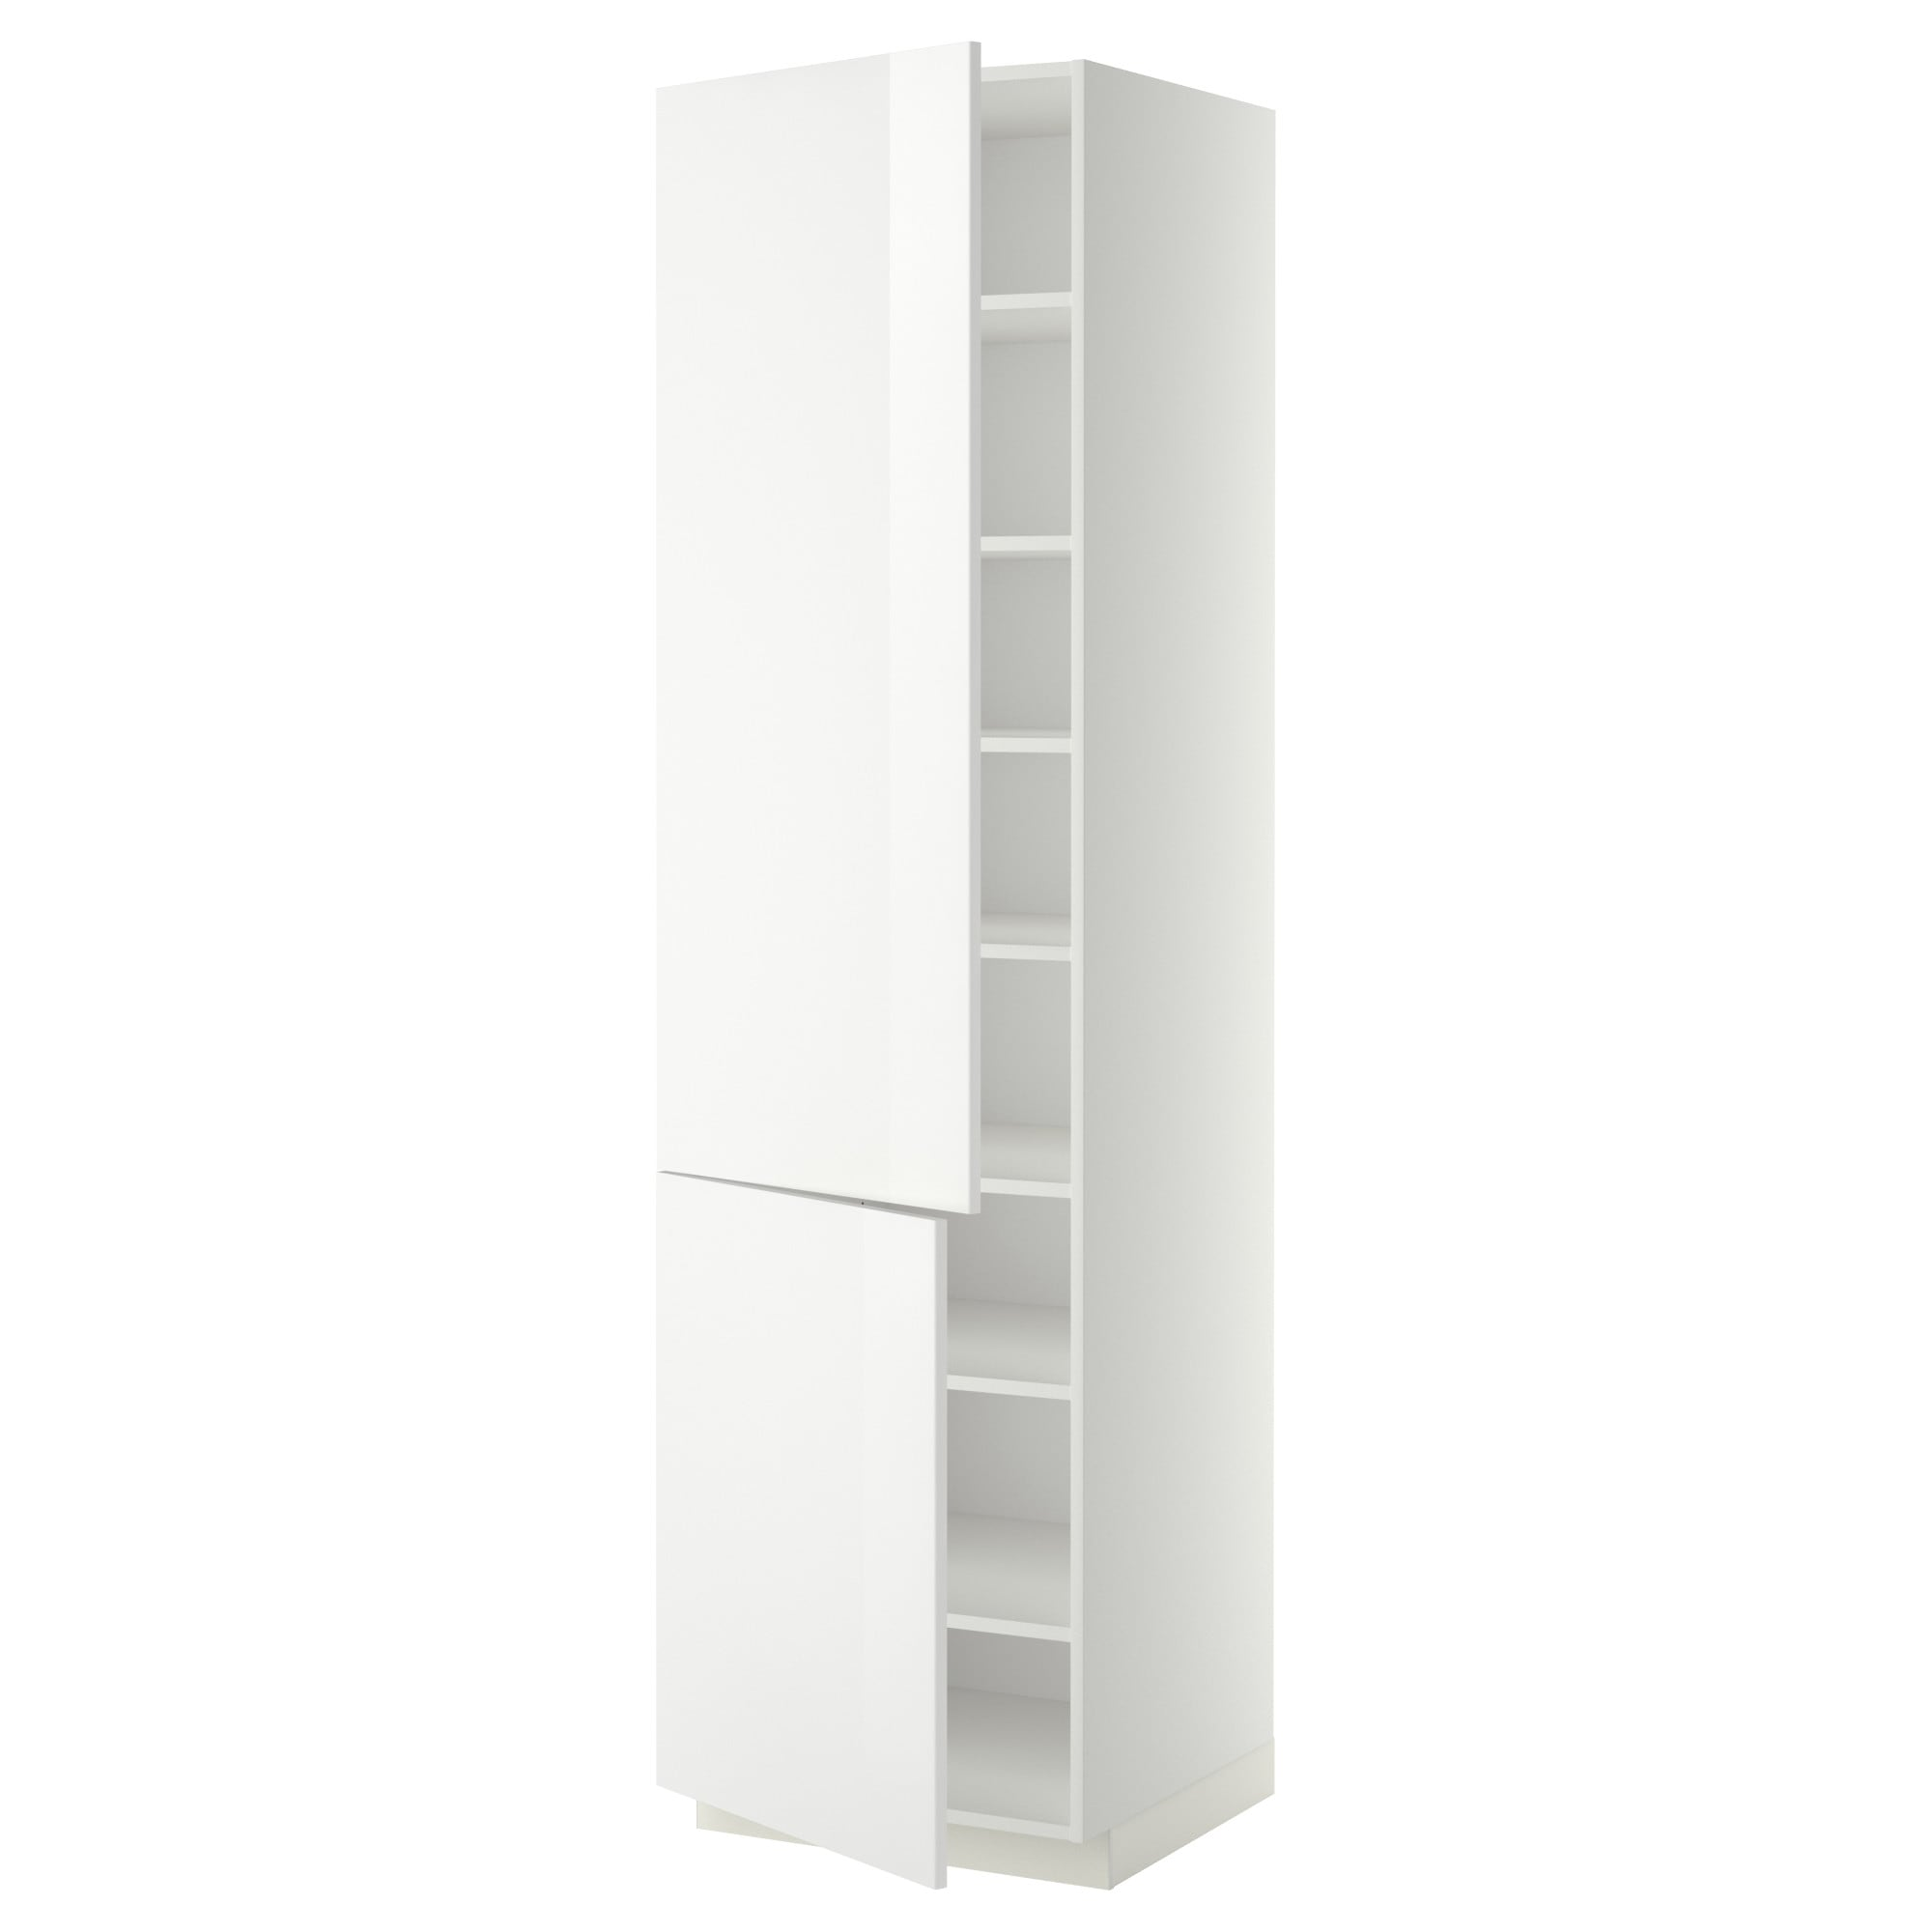 Metod High Cabinet With Shelves2 Doors White Ringhult White Ikea